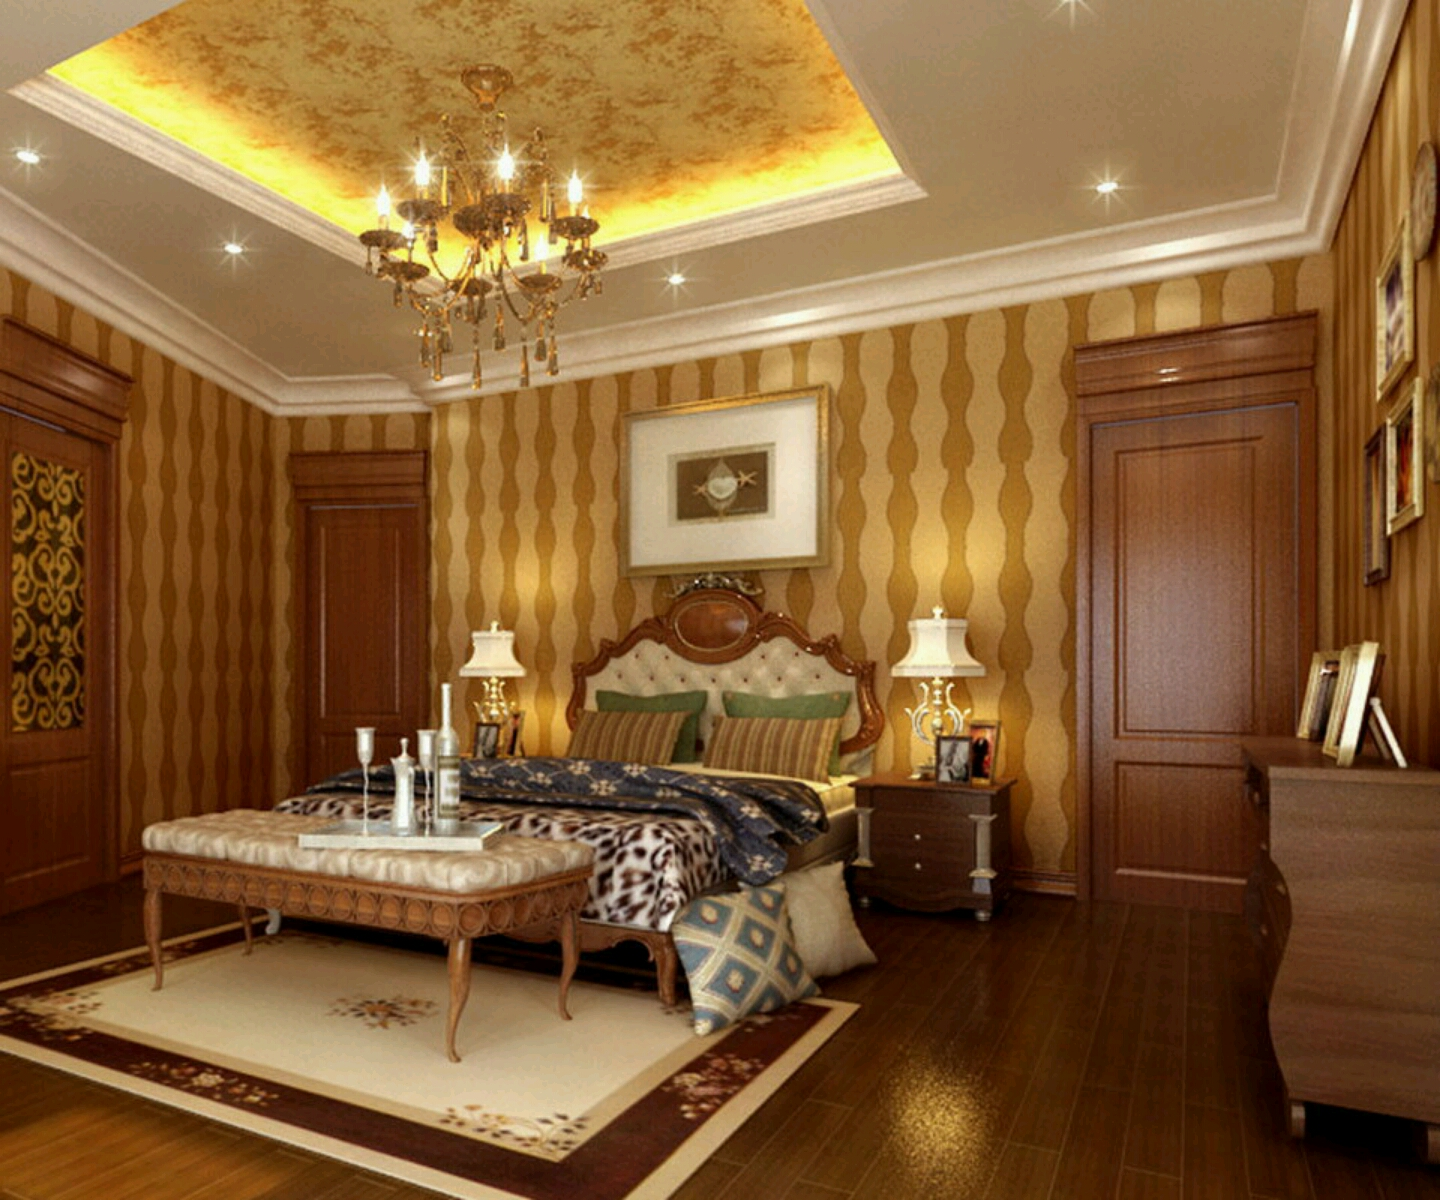 Home Ceiling Design Ideas: New Home Designs Latest.: Modern Bedrooms Designs Ceiling